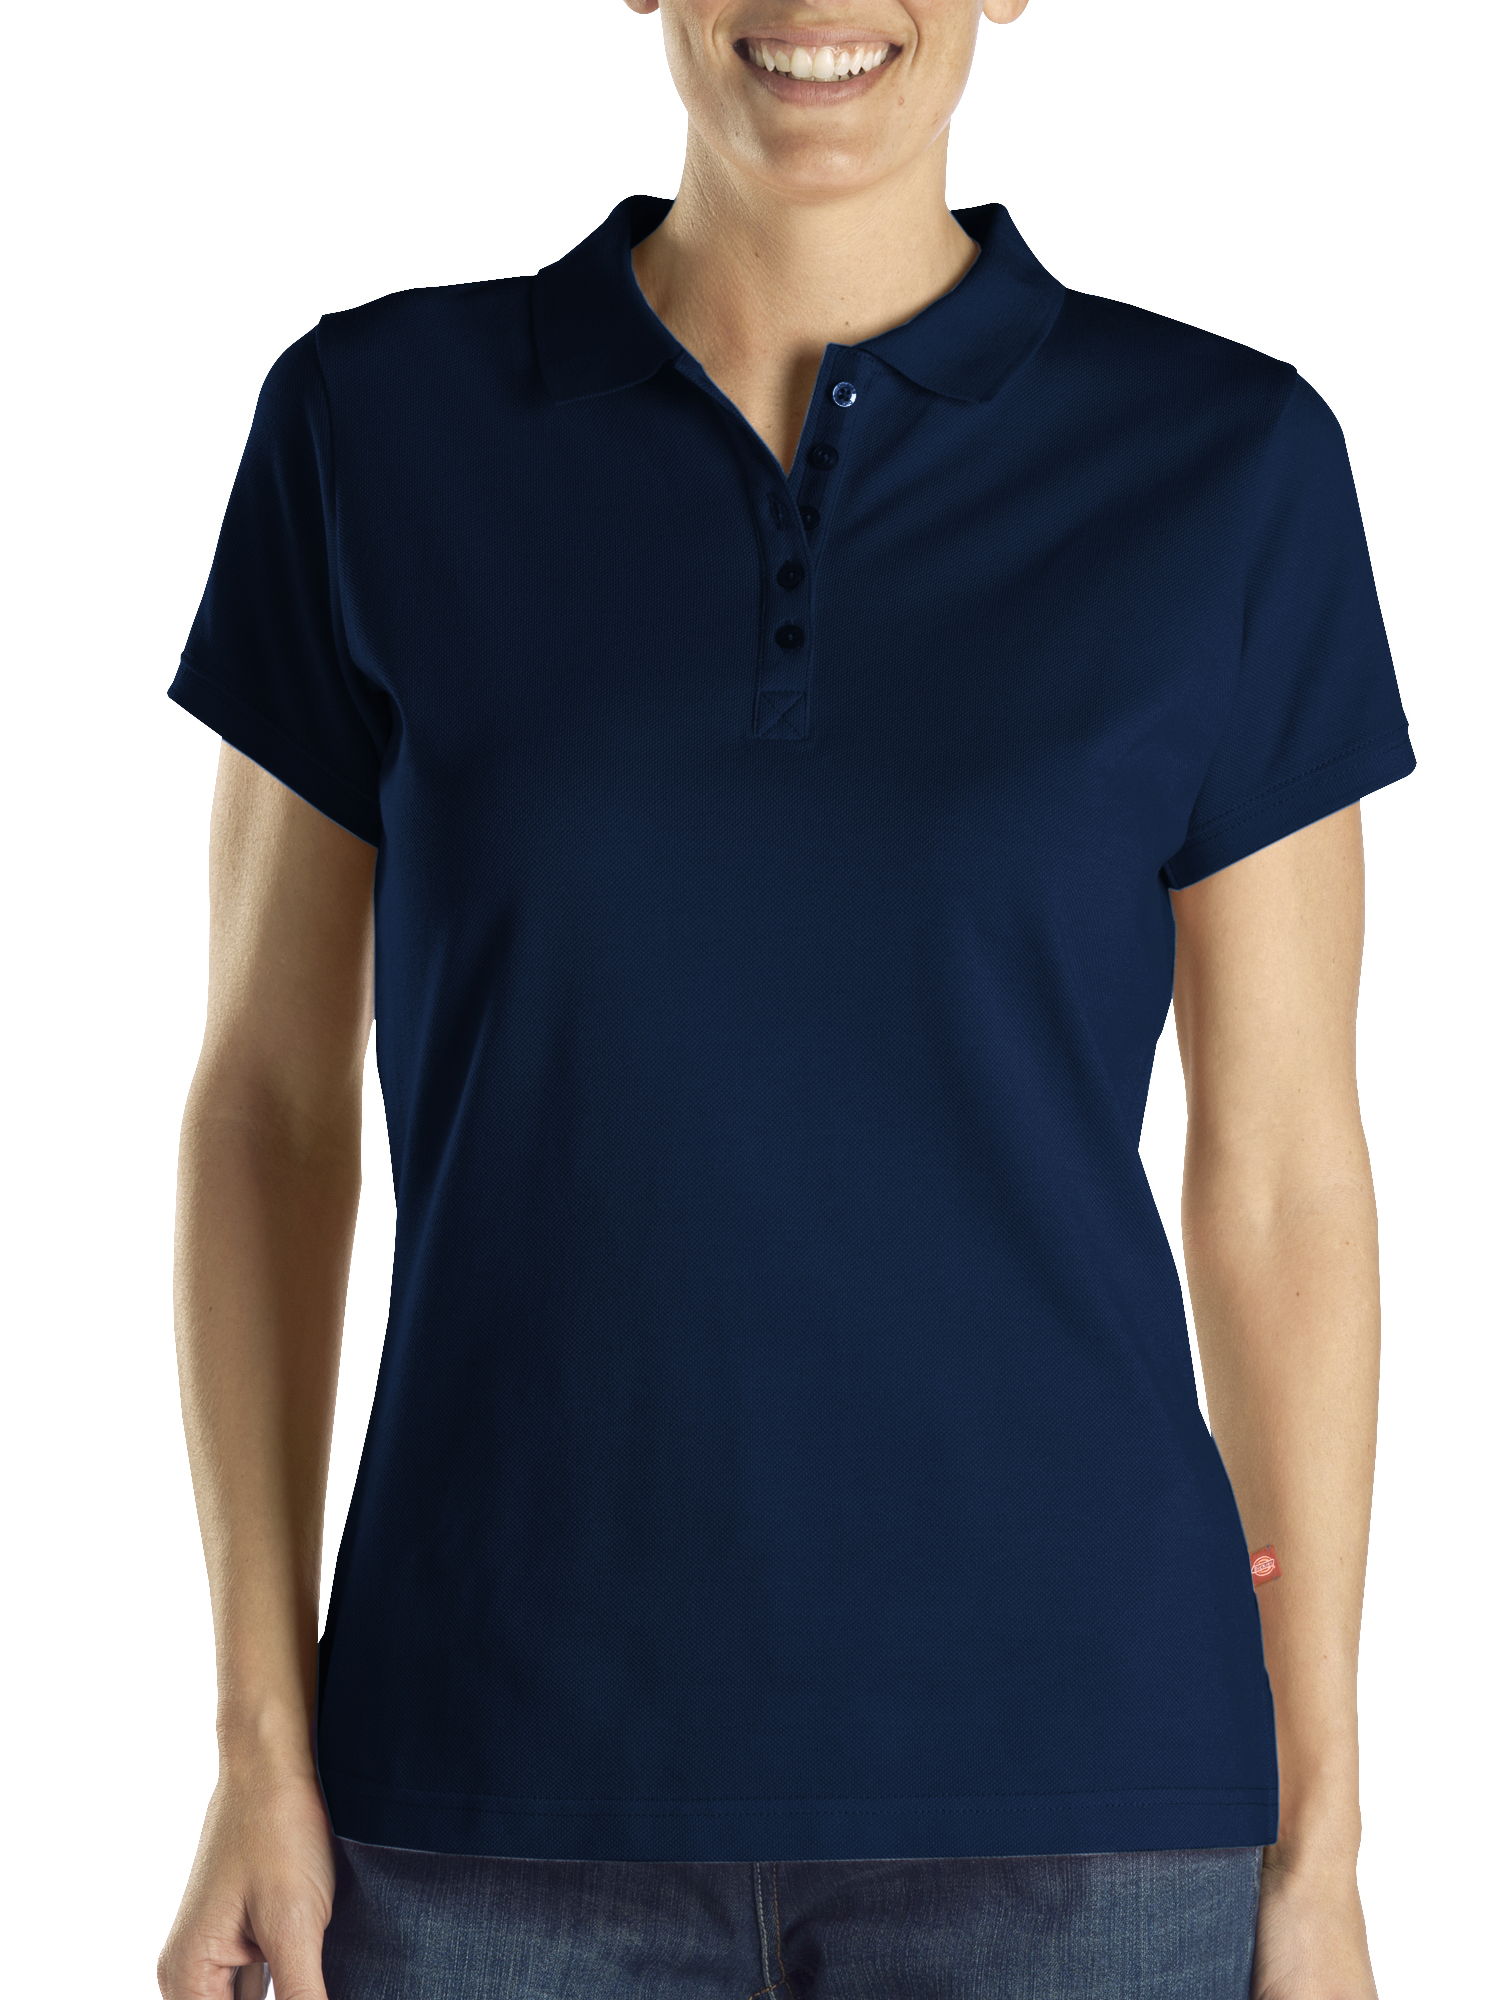 Dickies Women's Solid Pique Polo